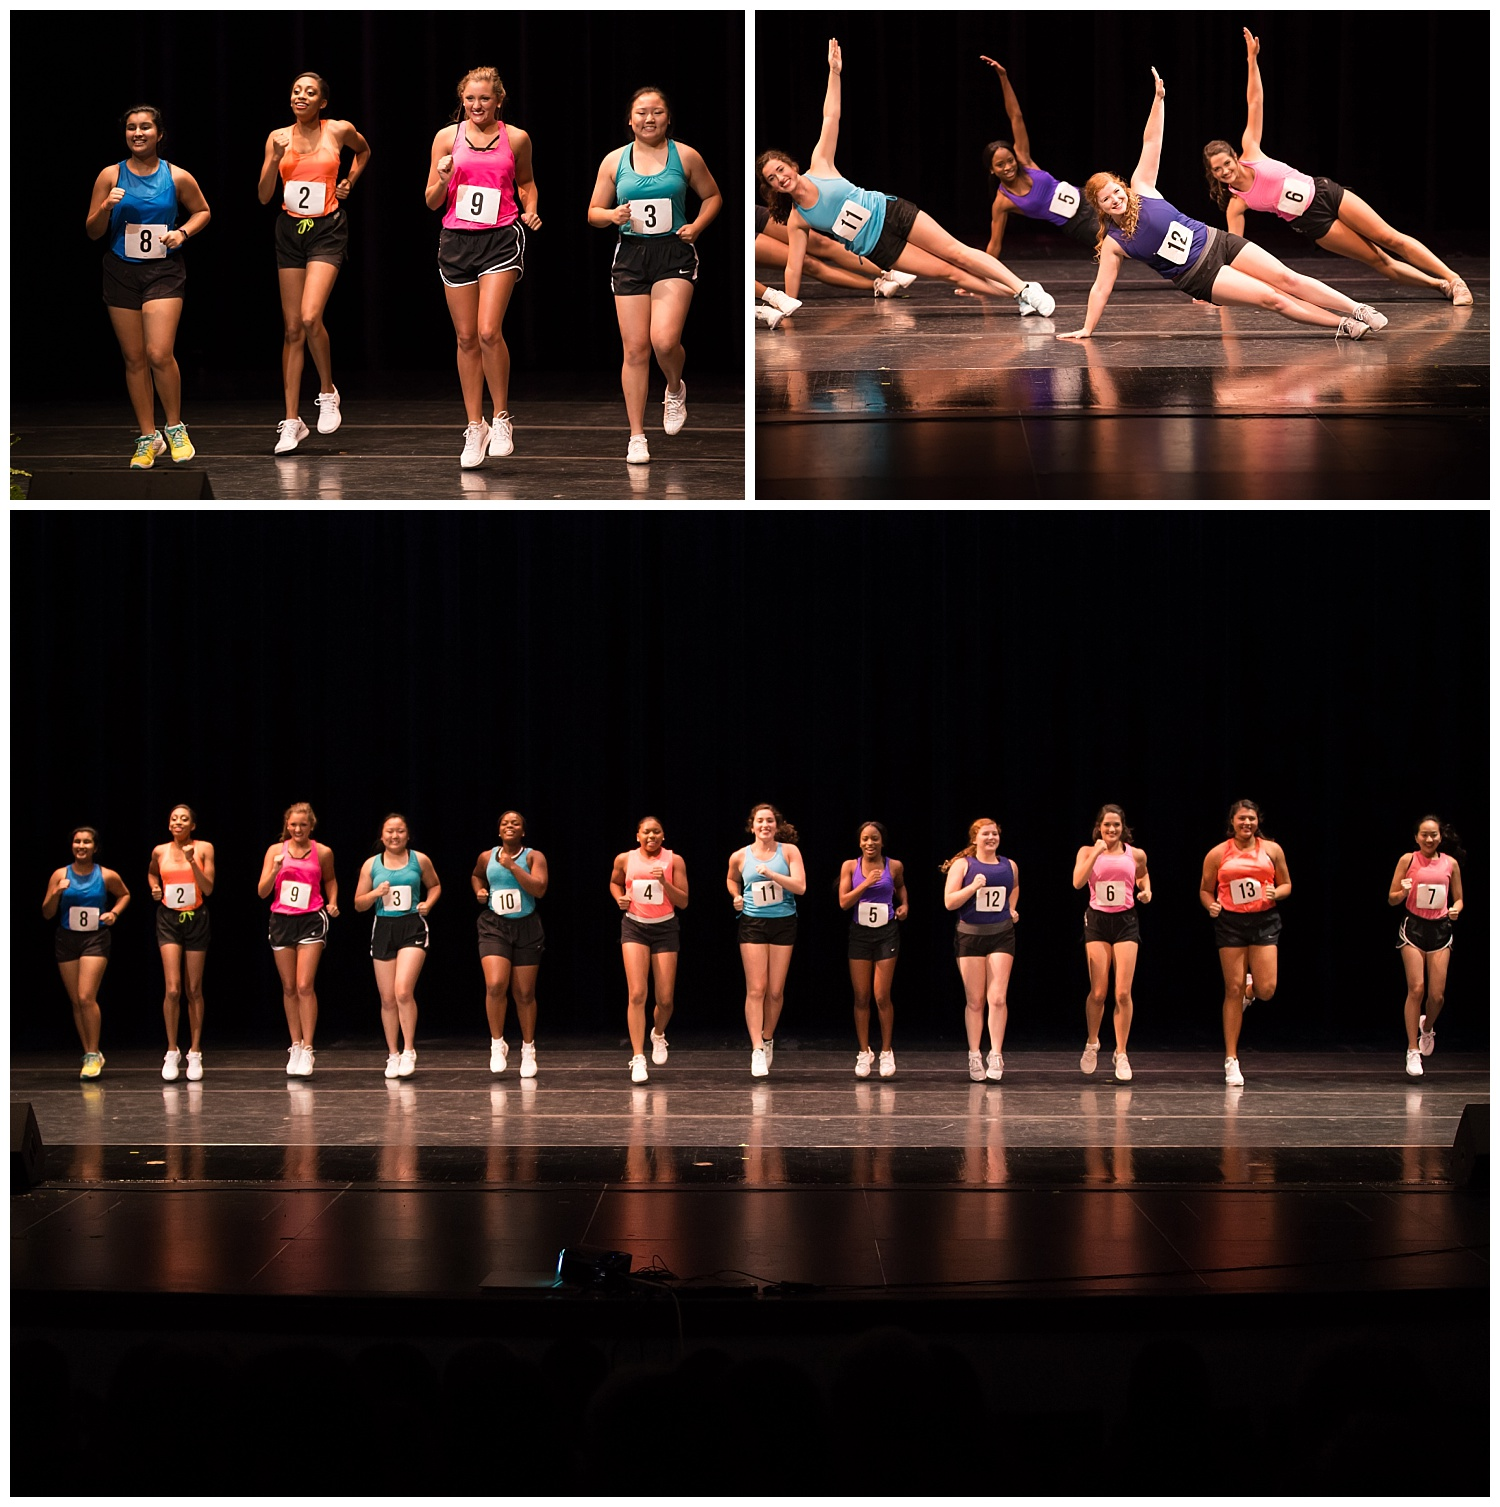 Lee county distinguished young woman fitness